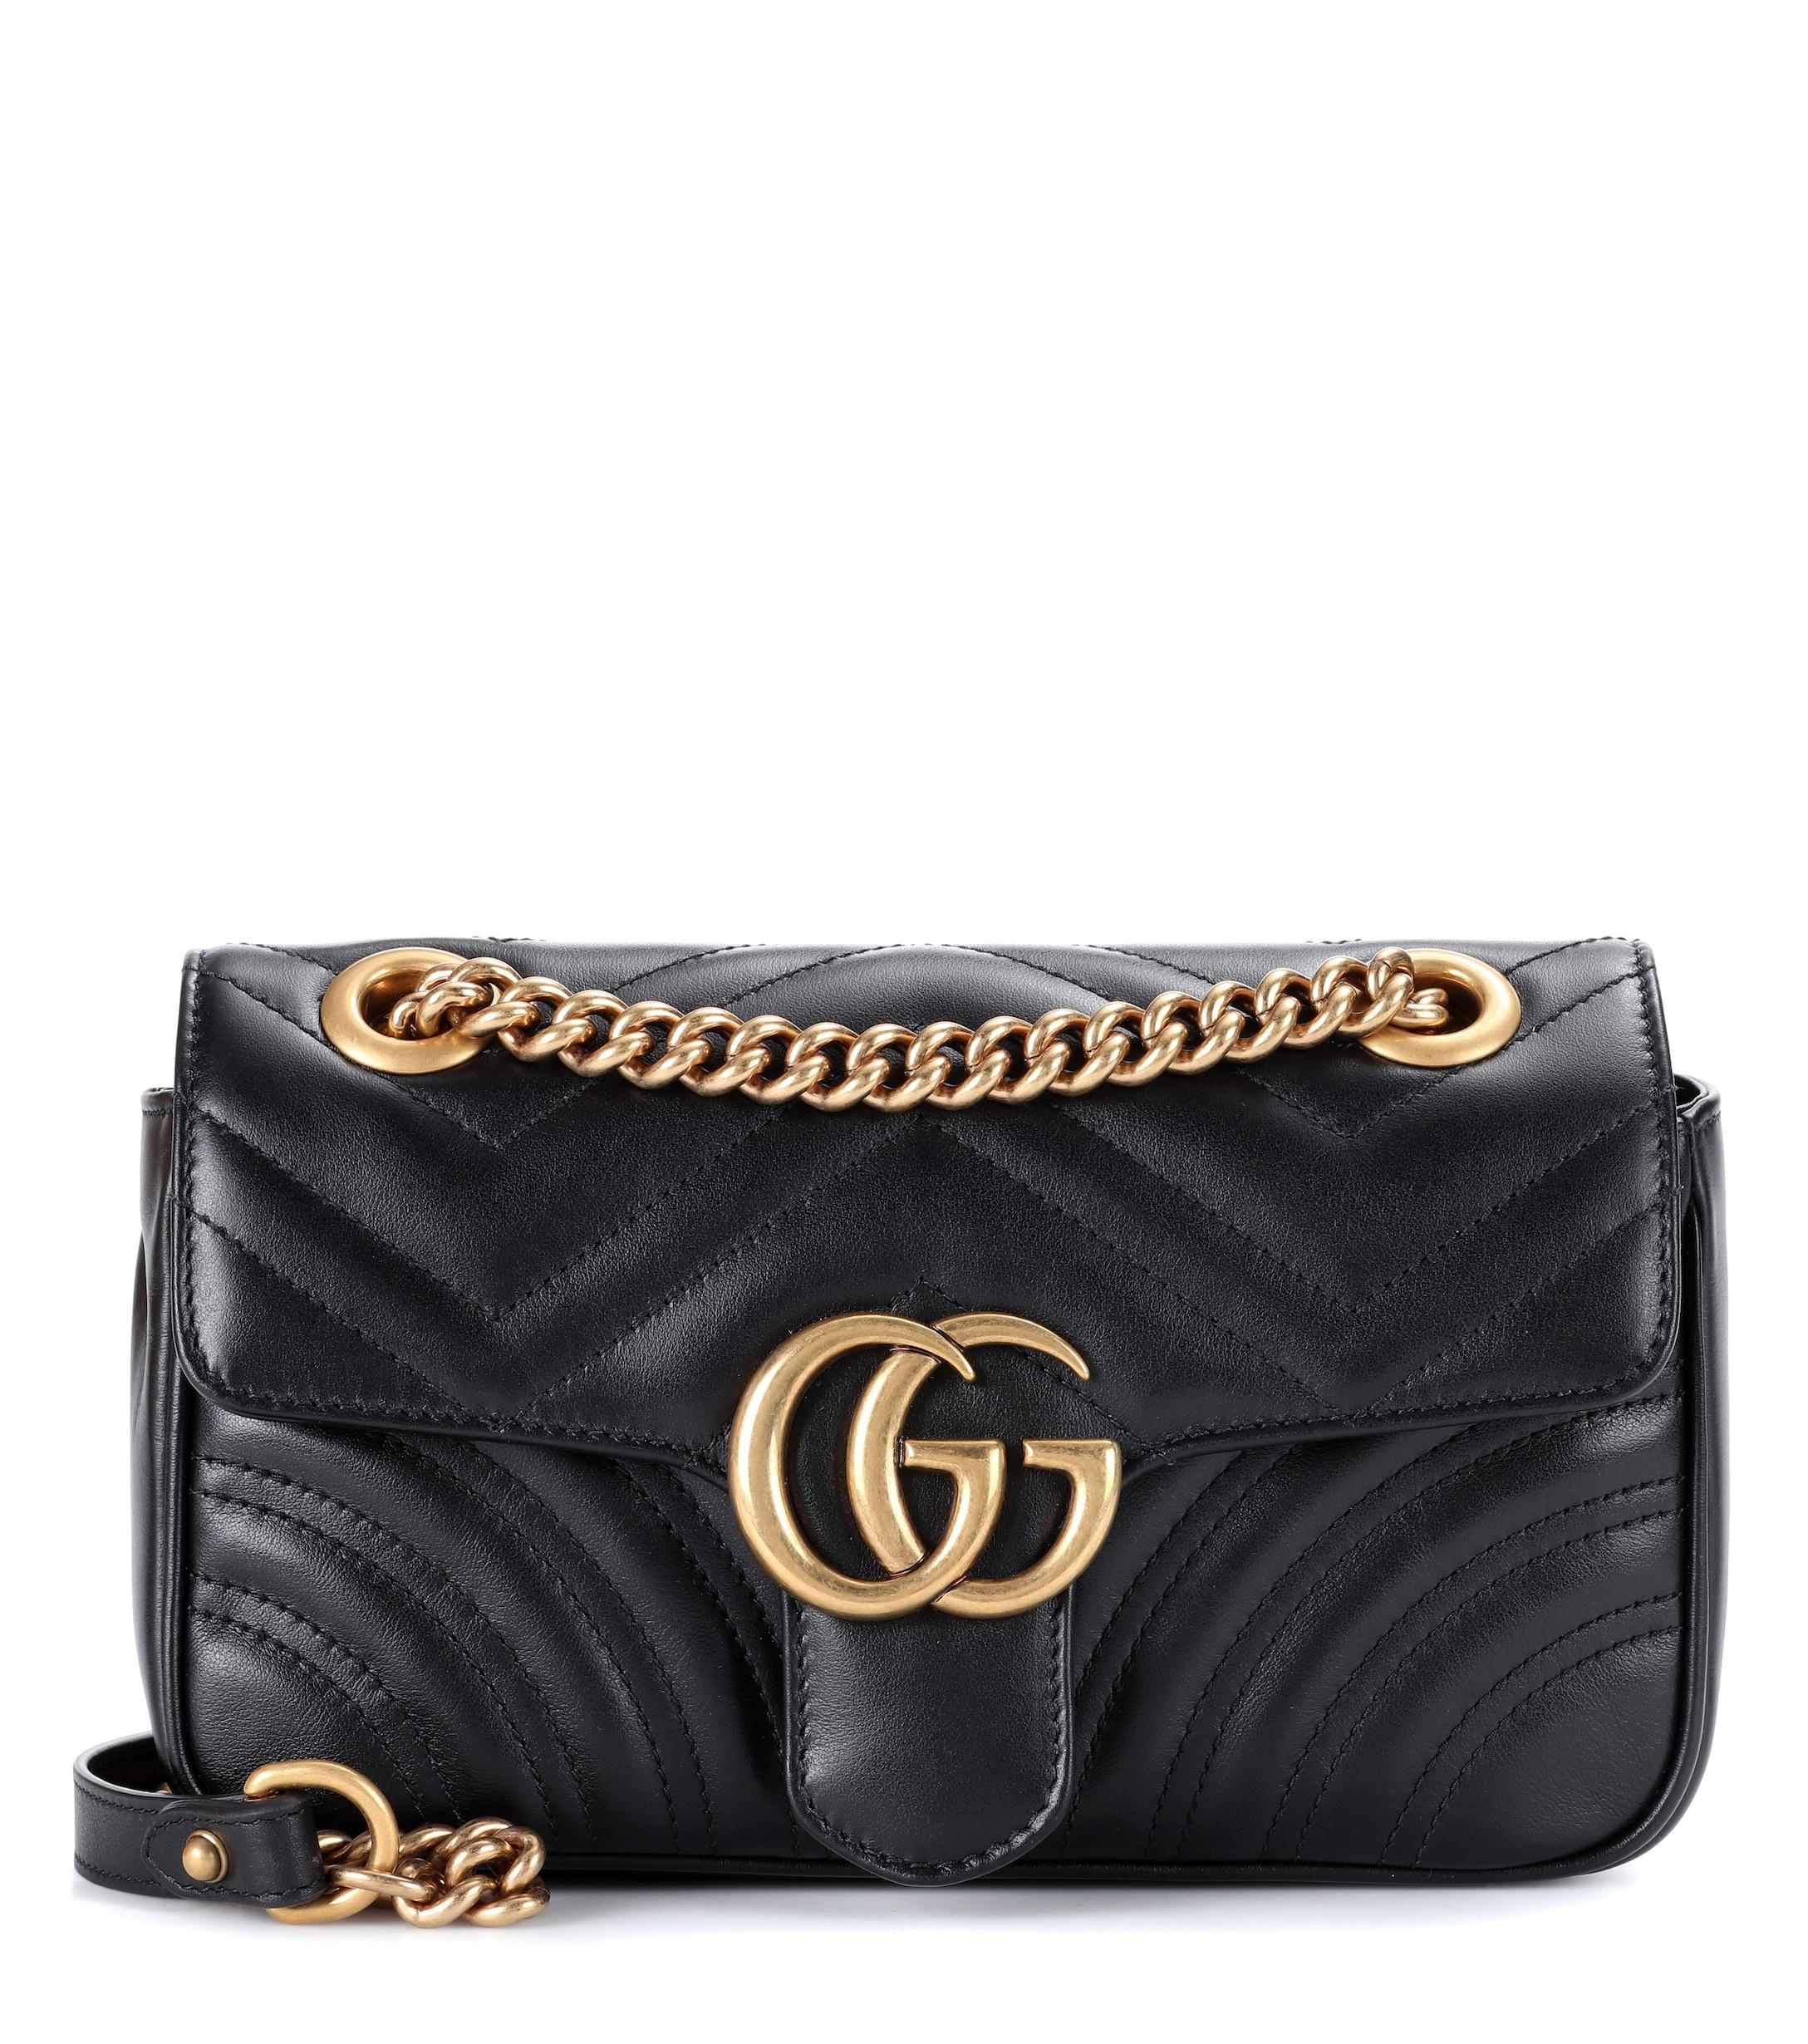 6cb1557ac60 Lyst - Gucci Mini Gg Marmont 2.0 Leather Shoulder Bag in Black